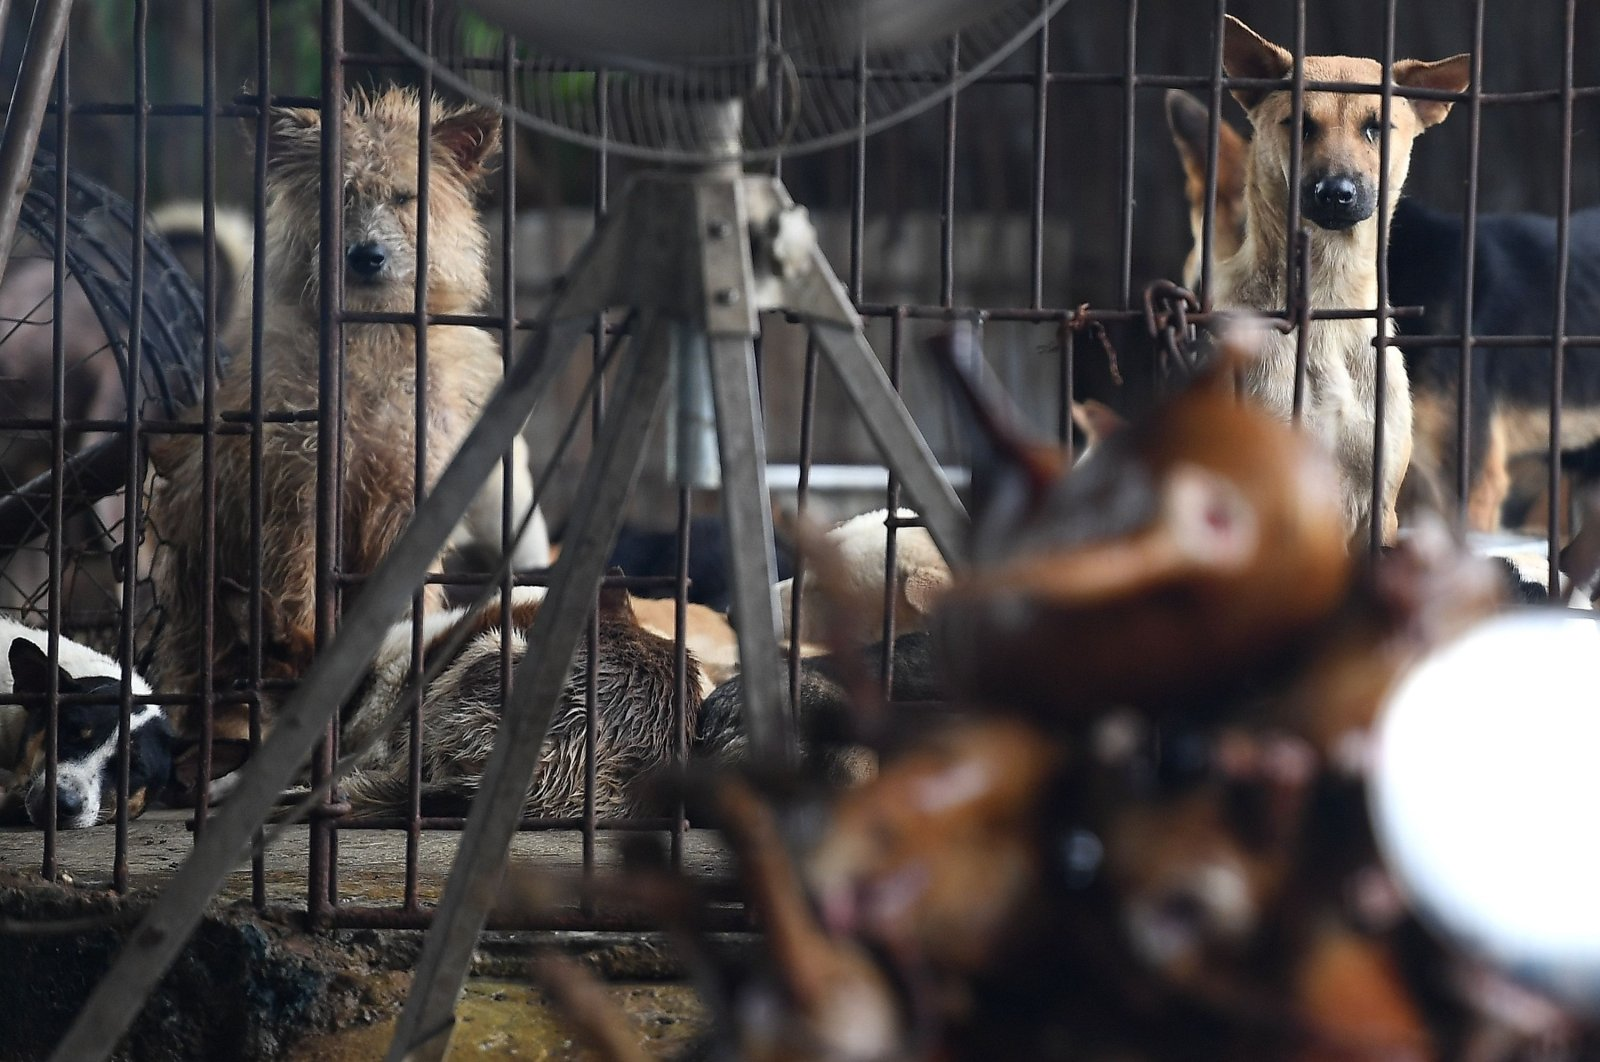 Dogs are kept in a cage at a slaughterhouse in Hanoi on June 15, 2020. (AFP Photo)